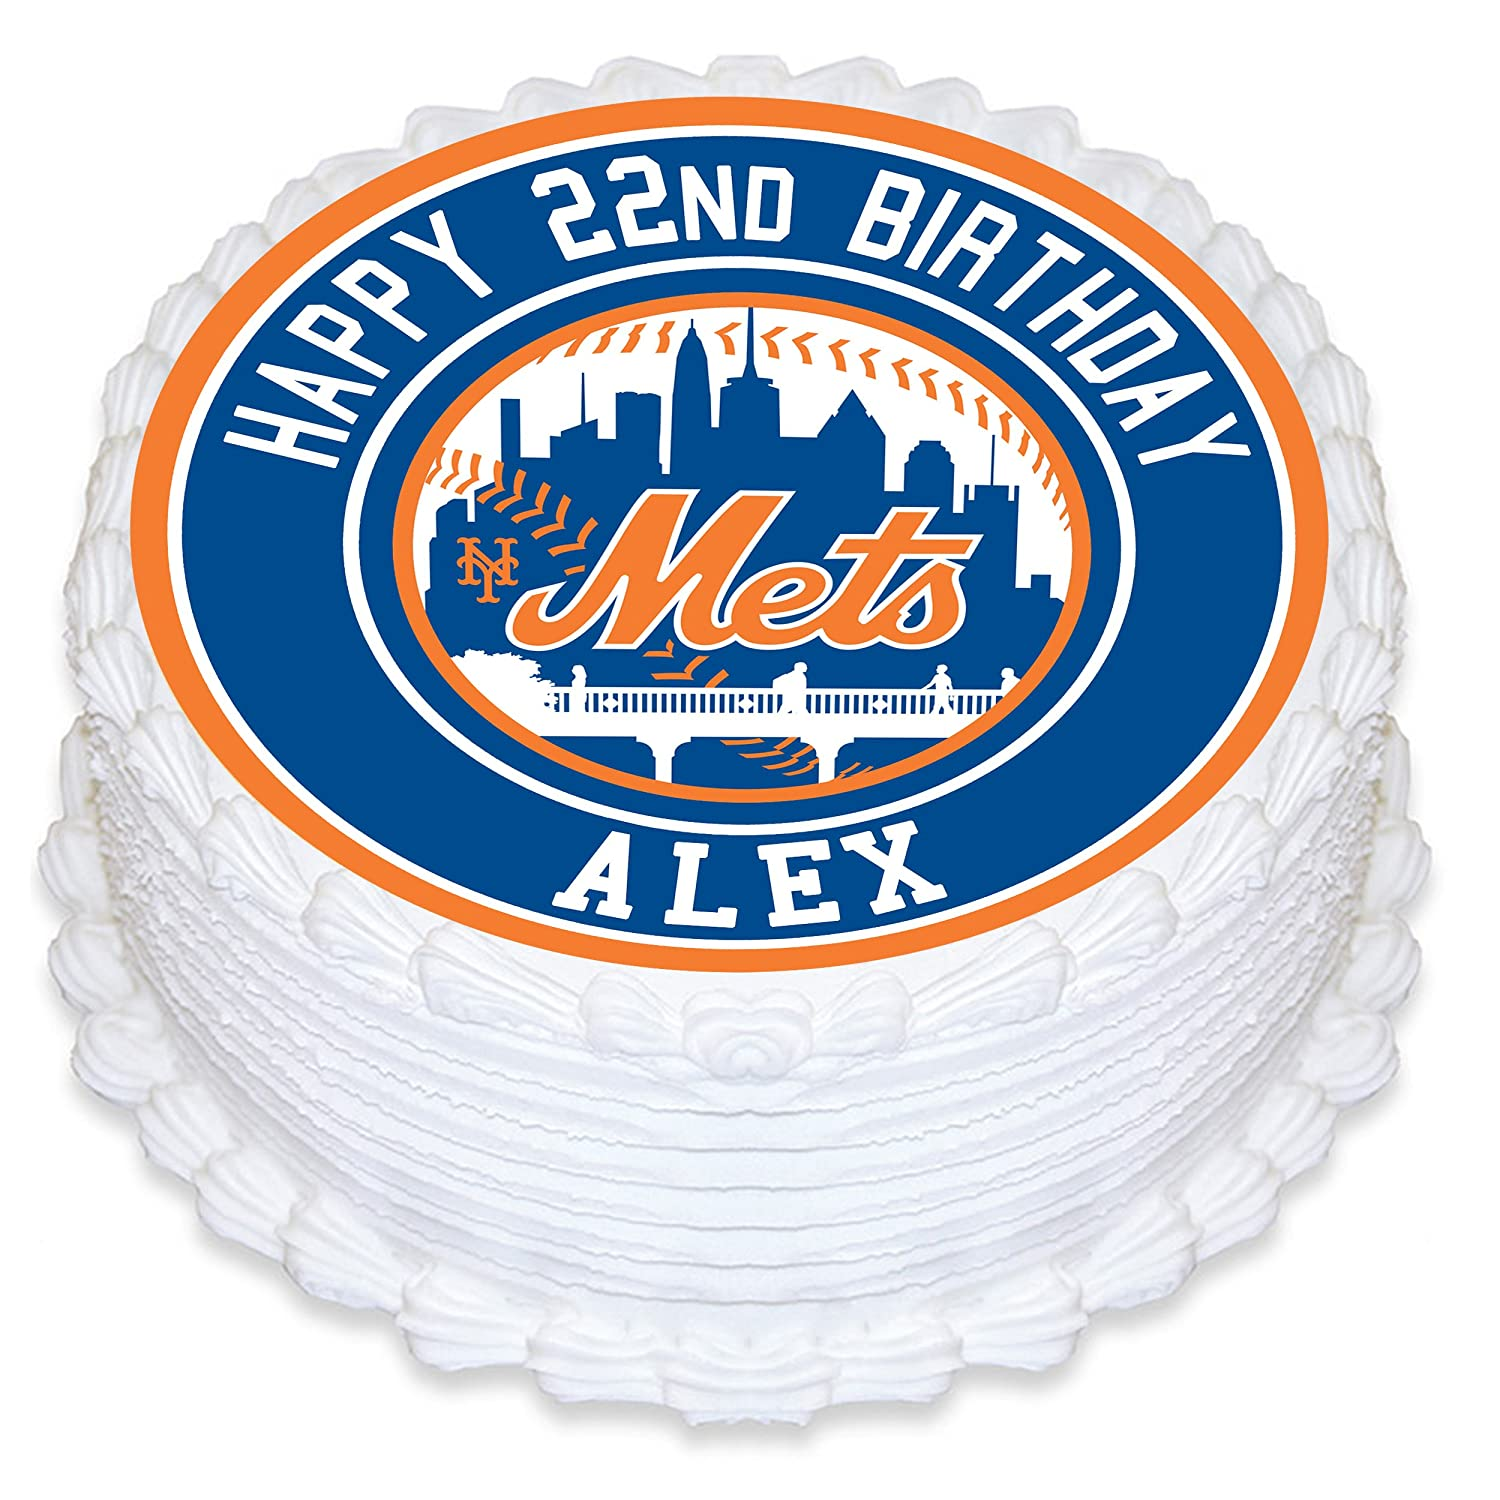 New York Mets Edible Image Cake Topper Personalized Birthday 8 Round Circle Decoration Custom Sheet Party Sugar Frosting Transfer Fondant